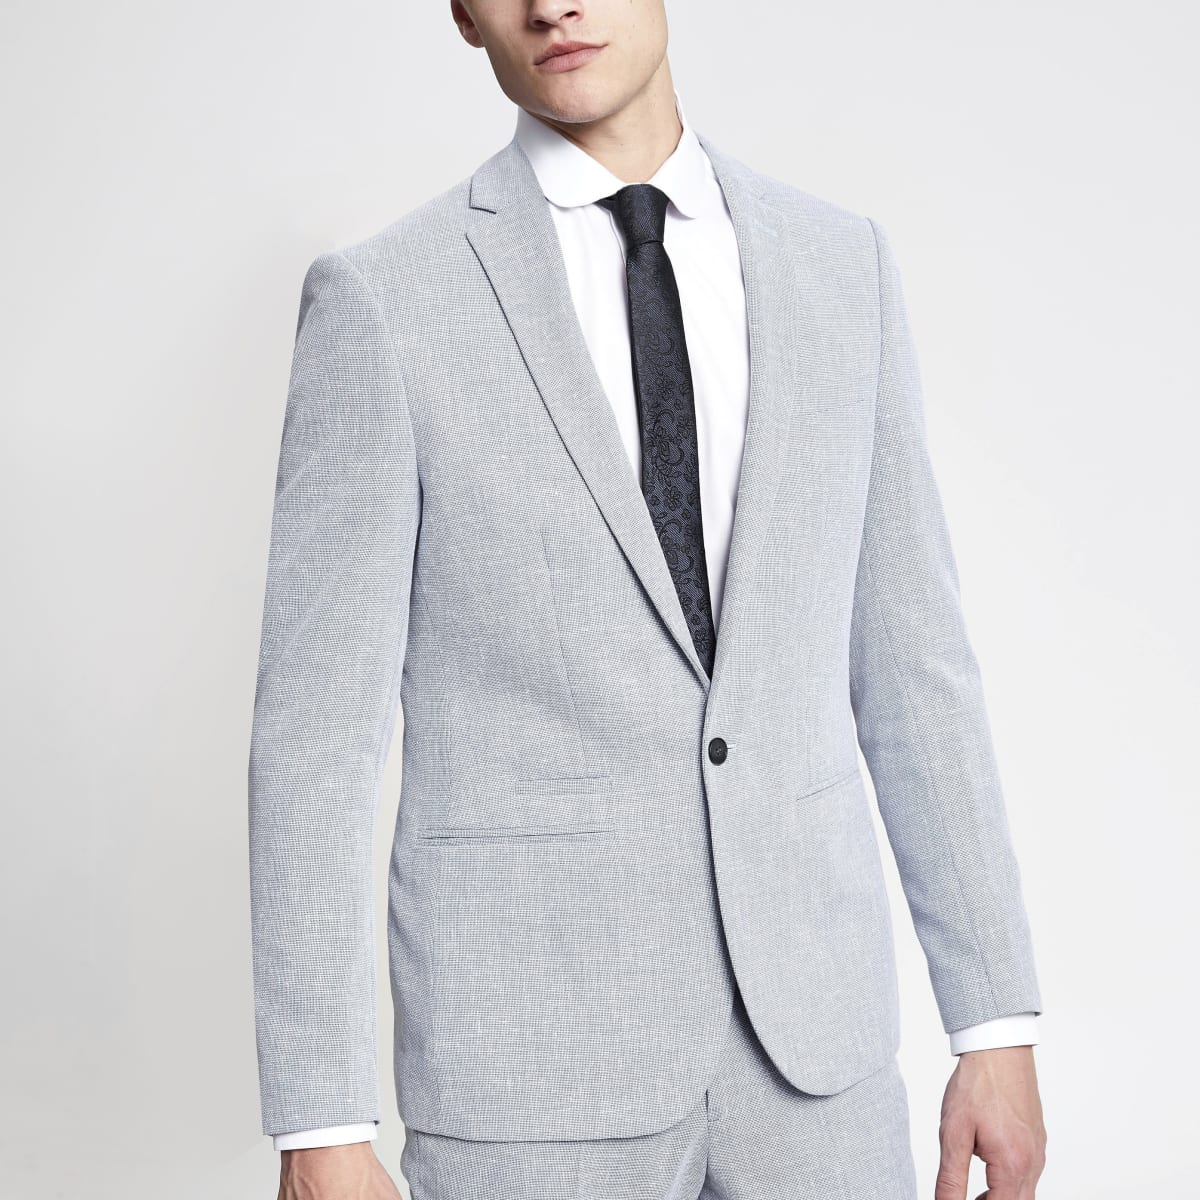 Light blue skinny suit jacket